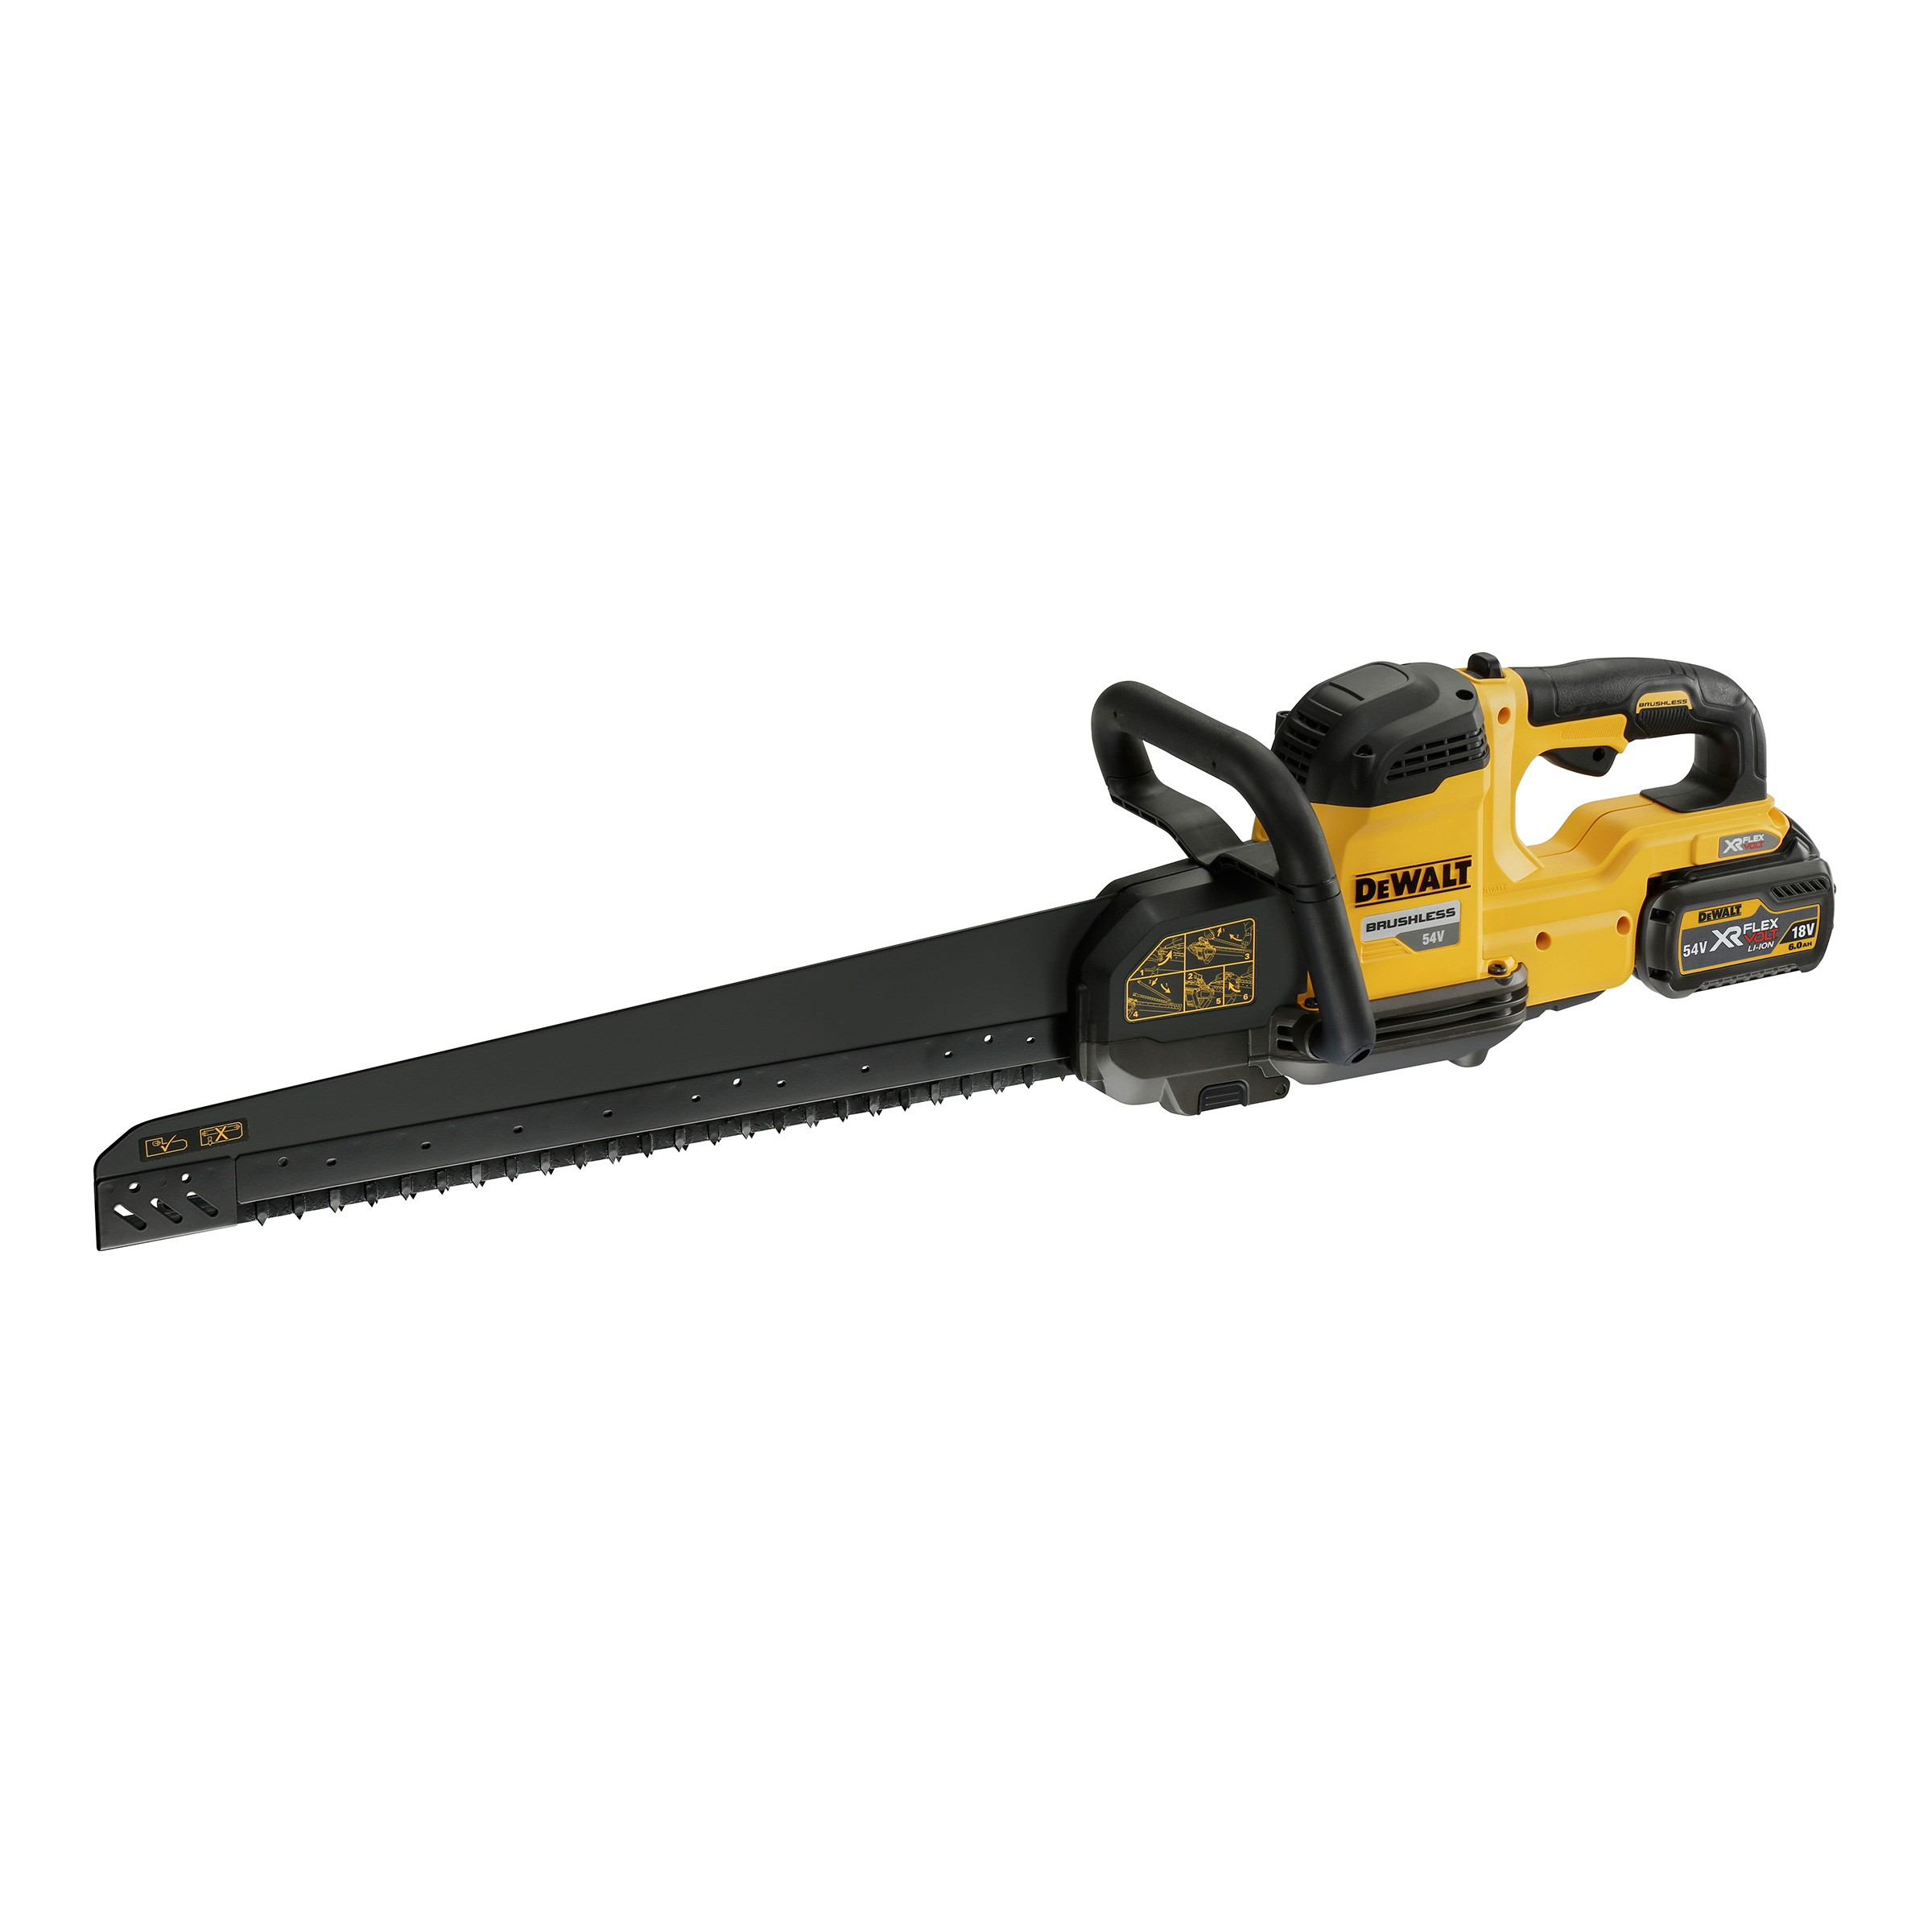 DeWalt DCS397T2 54v XR FLEXVOLT 425mm Long Bar Cordless Brushless Alligator Saw inc 2x DCB546 Batts